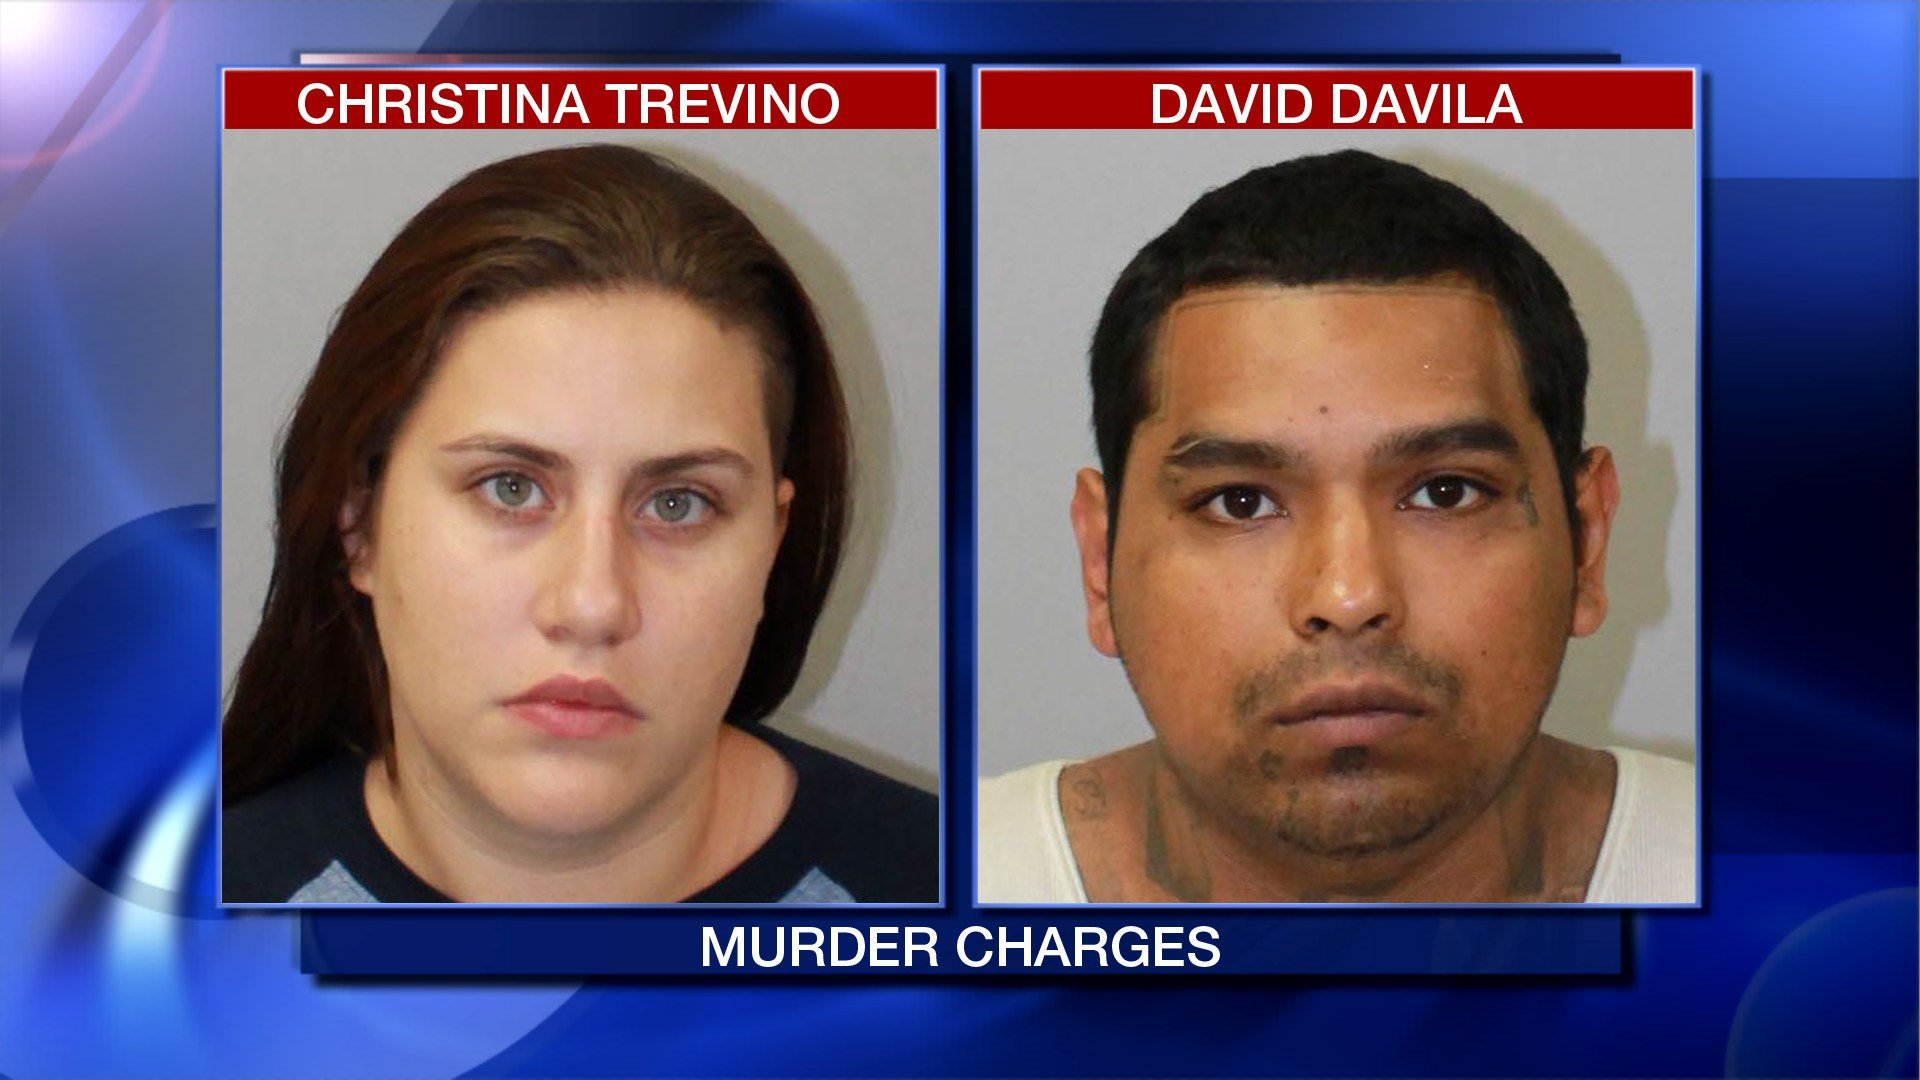 David Davila and Christina Trevino accused in the murder of 13-year old Alex Torres.